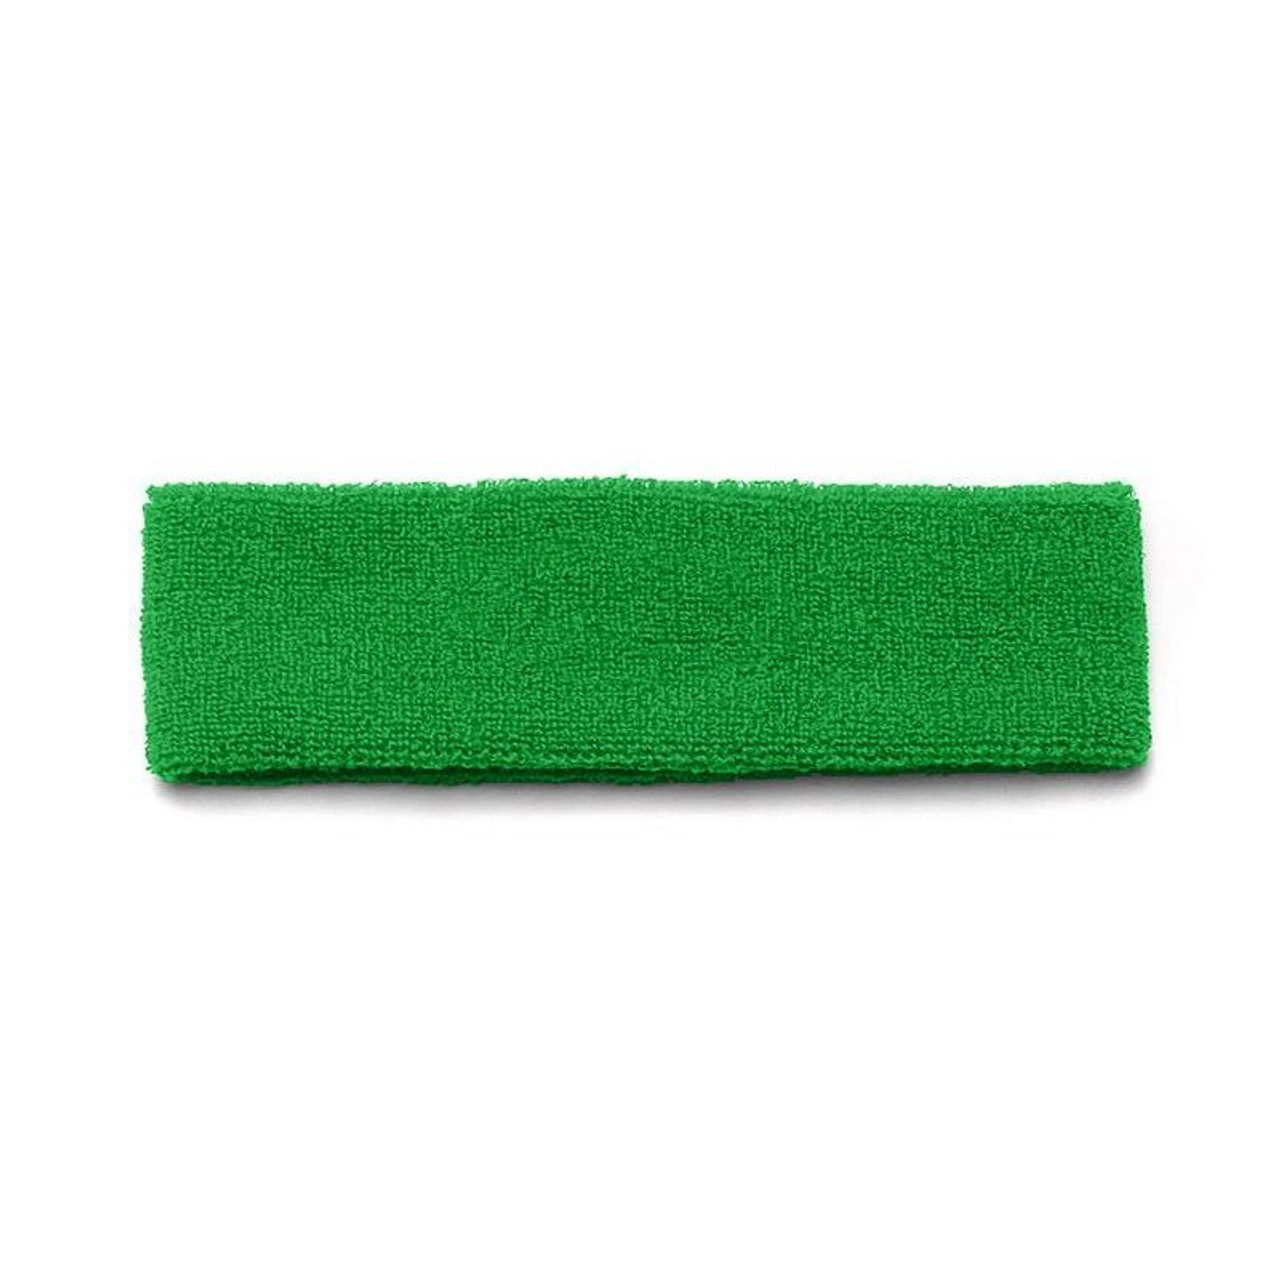 Stretchy Athletic Sport Headband Sweatbands for Yoga, Dance, Gym Workouts - 12 Pack